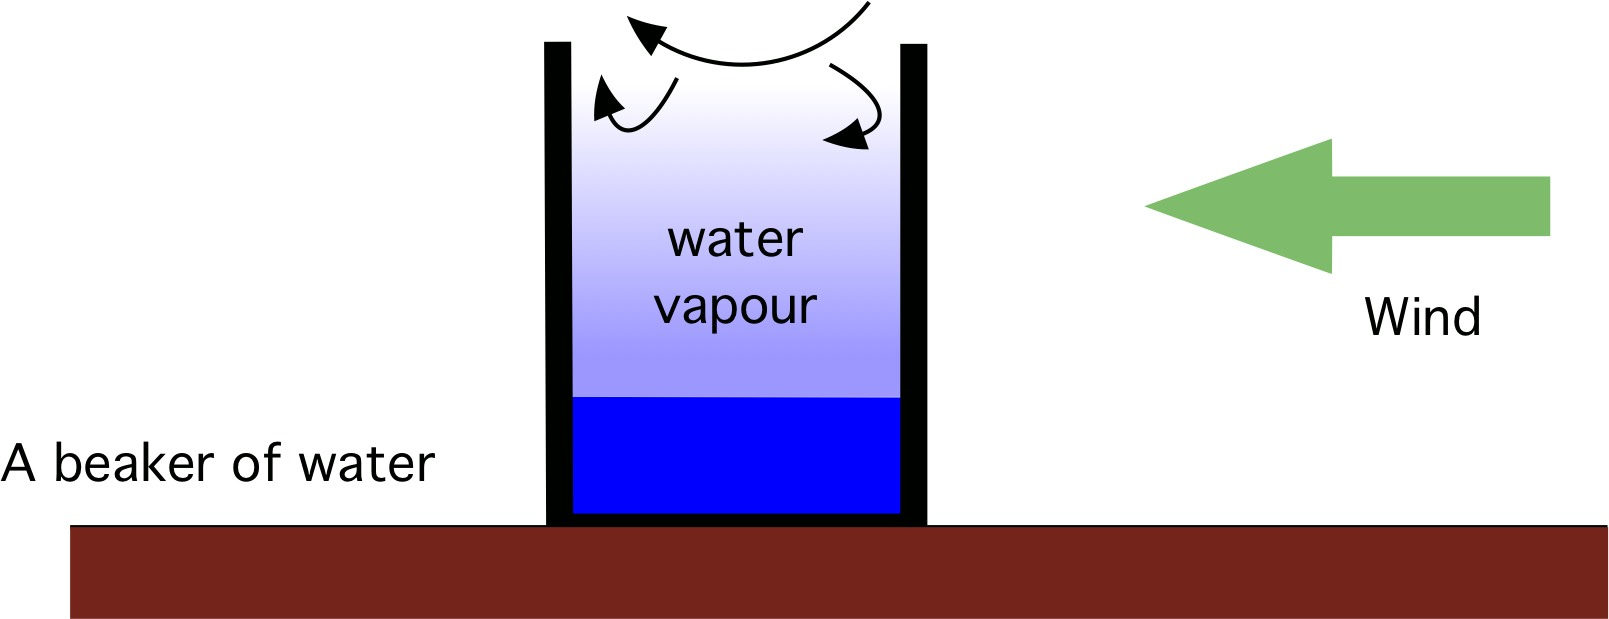 Liquid clipart leak Beaker Air the over of